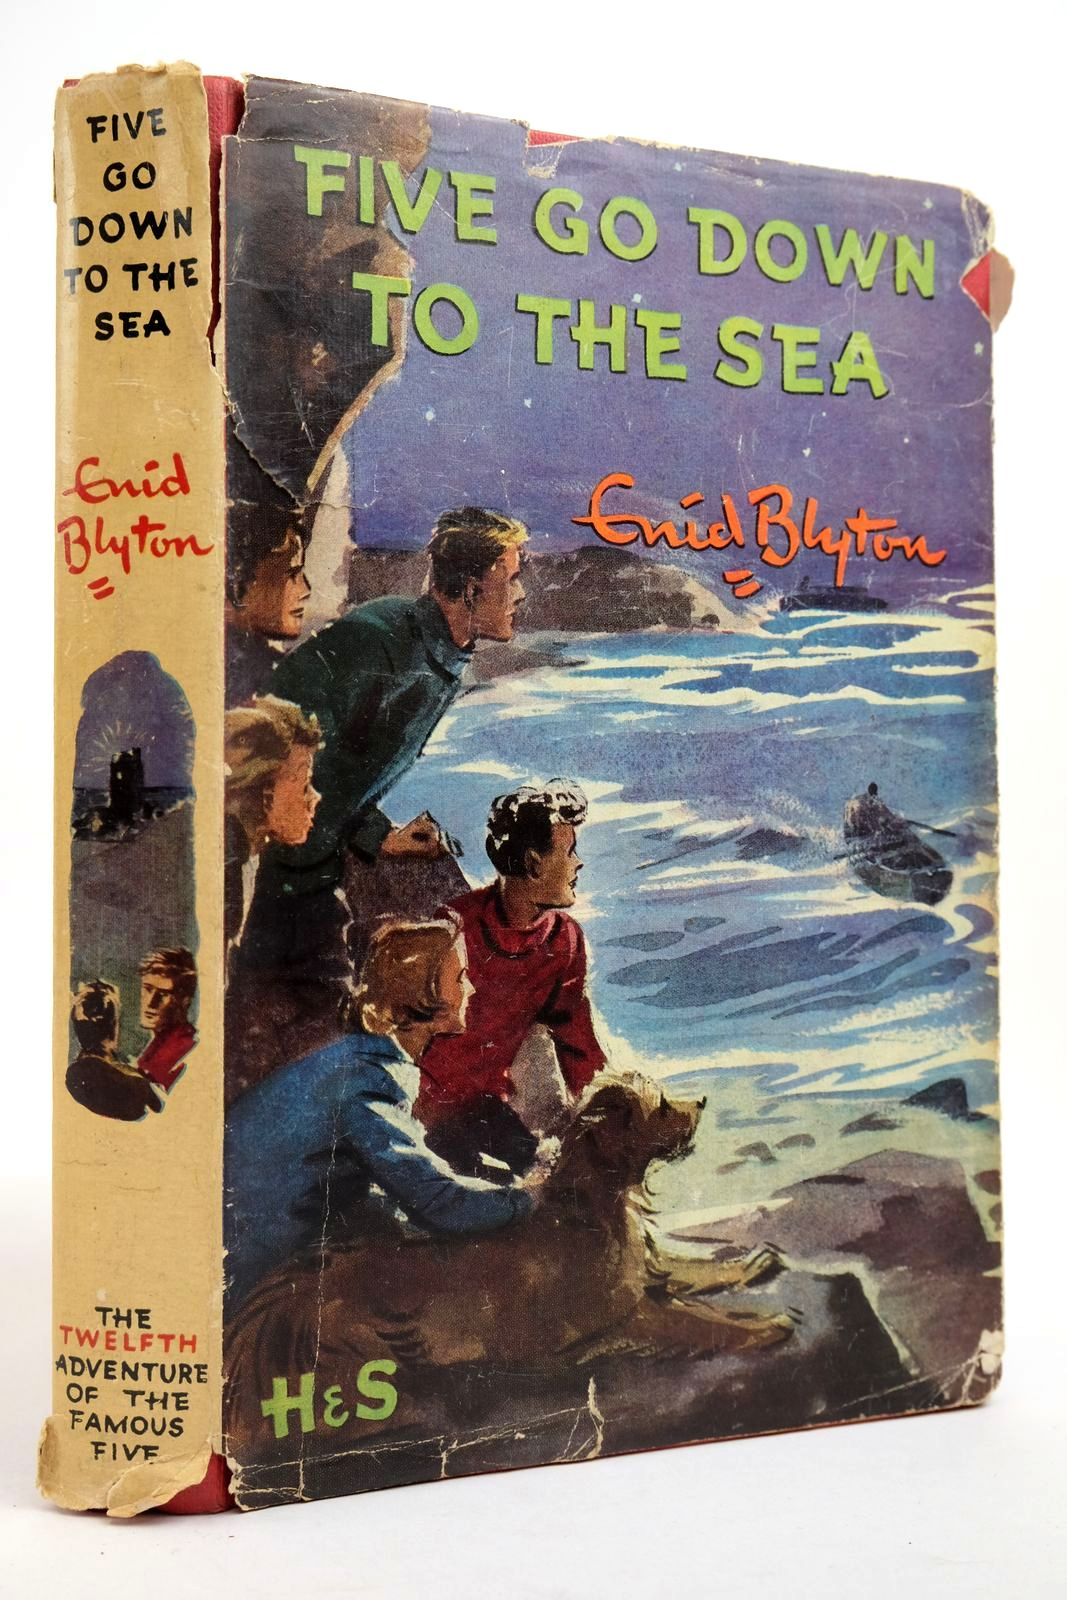 Photo of FIVE GO DOWN TO THE SEA written by Blyton, Enid illustrated by Soper, Eileen published by Hodder & Stoughton (STOCK CODE: 2134941)  for sale by Stella & Rose's Books